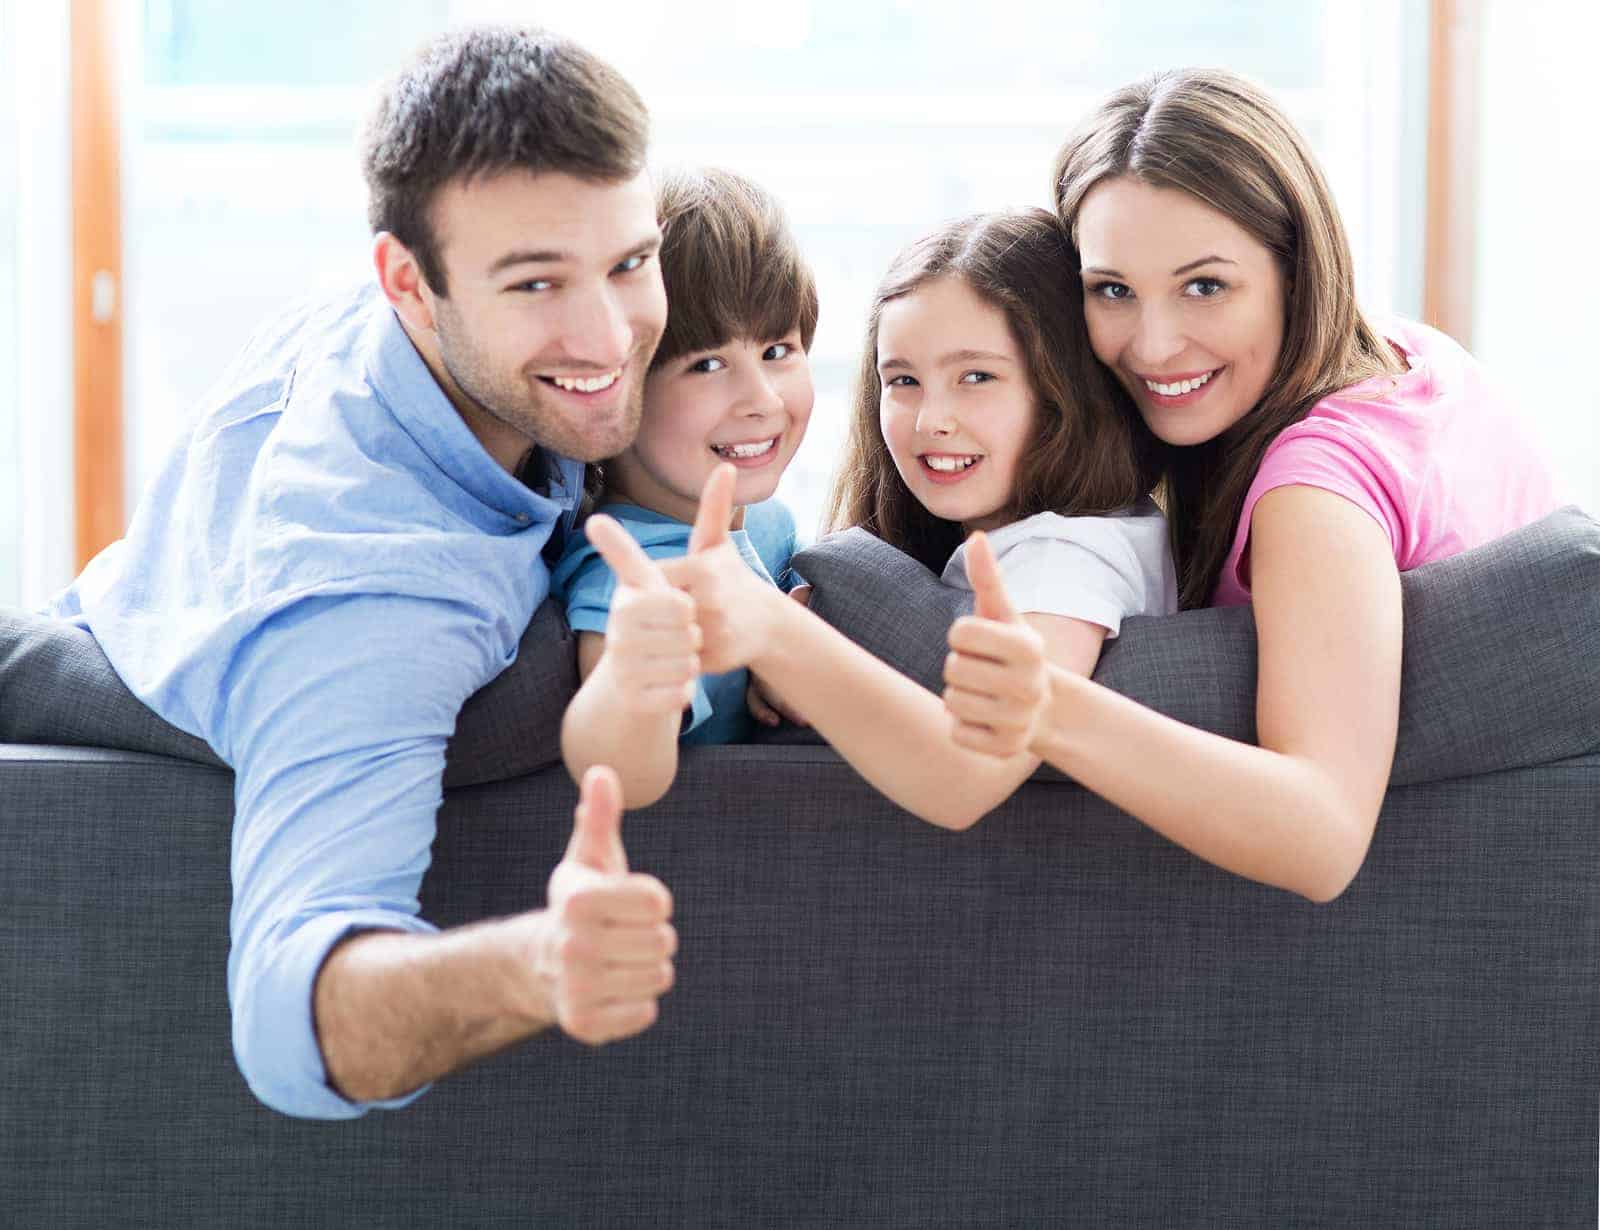 Family at home with thumbs up